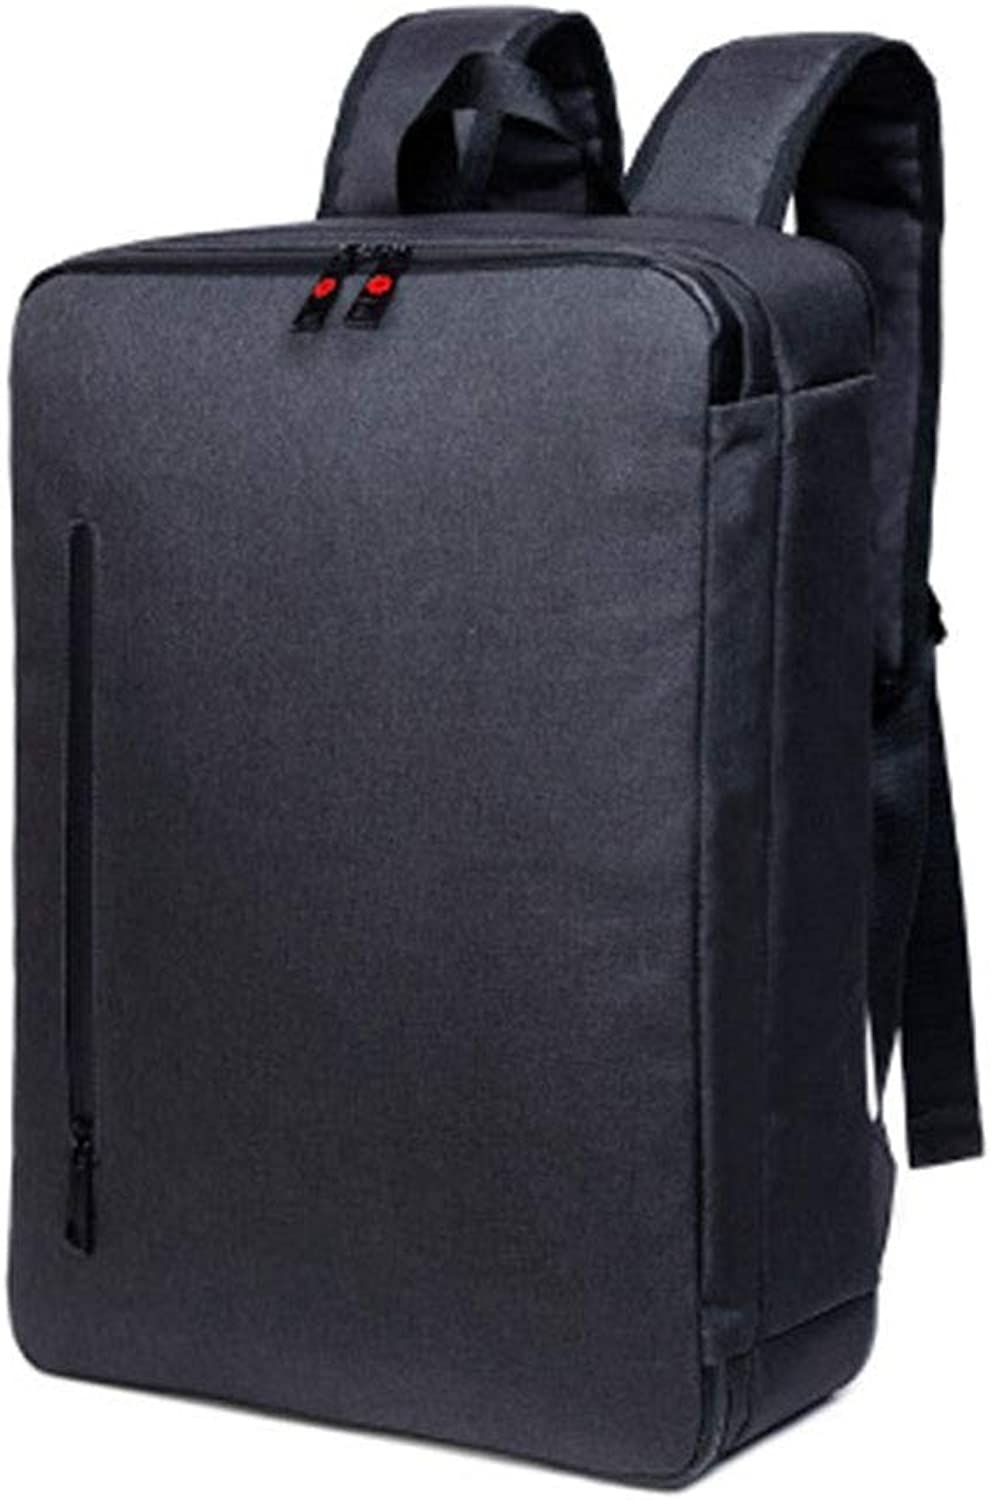 Business MultiFunction Backpack, Threeuse Laptop Bag, Men's College Student Bag Oxford Backpack Suitable for Going to Work,Black